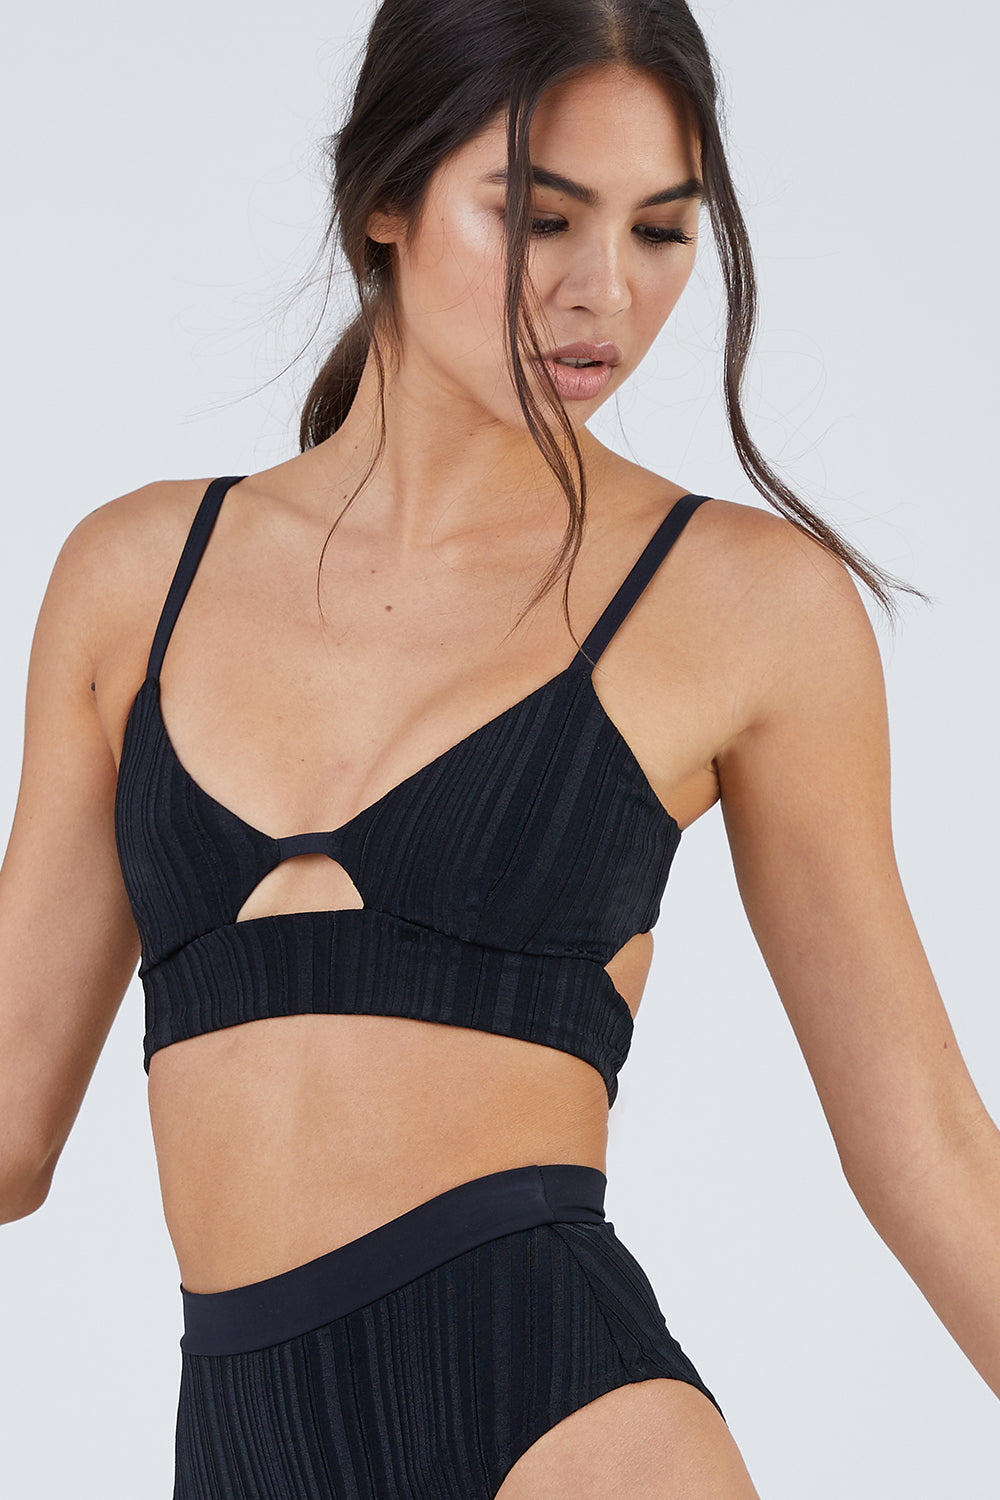 Juliet Ribbed Cut Out Bralette Bikini Top - Slinky Black